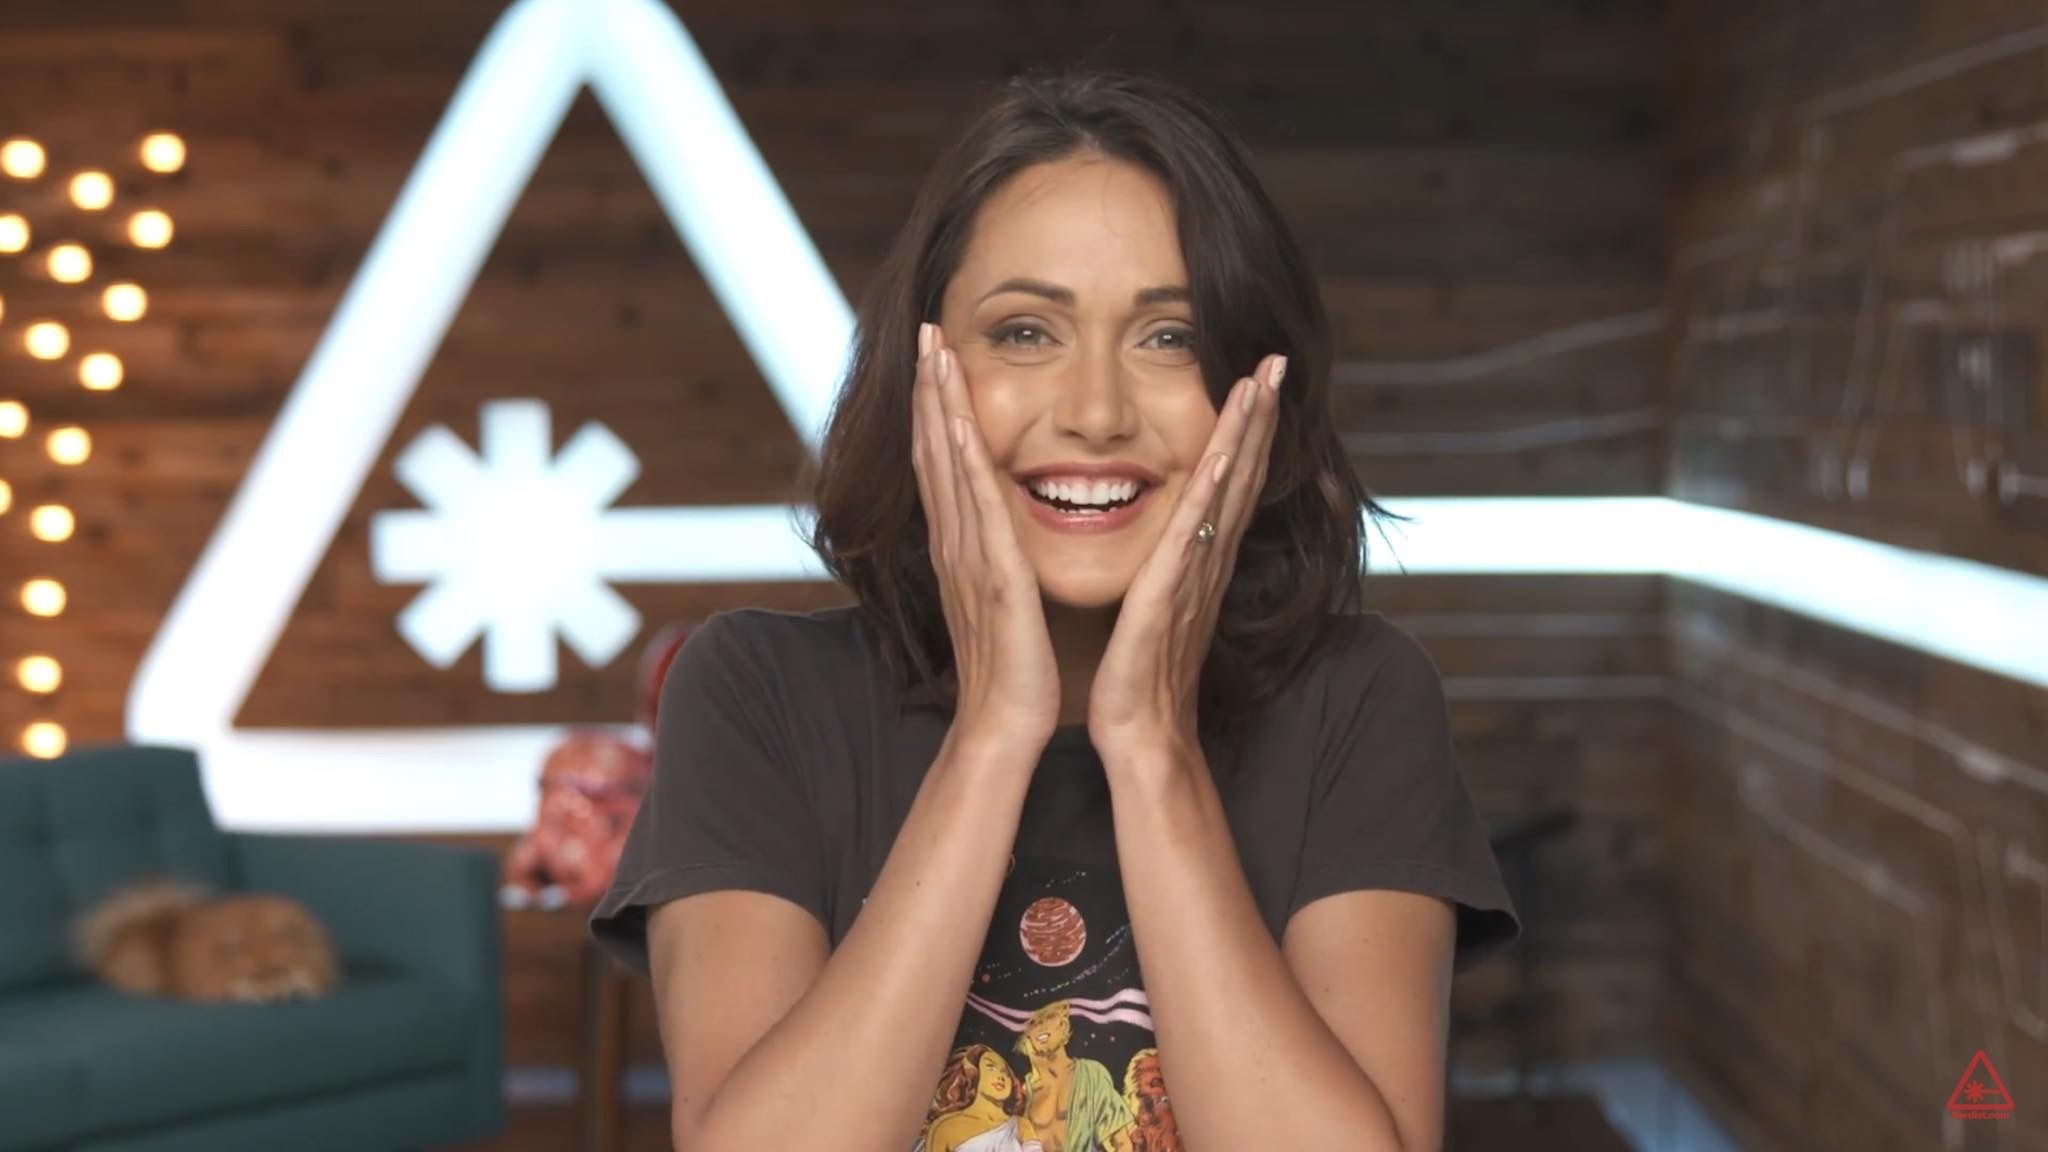 Res: 2048x1152, Jessica chobot